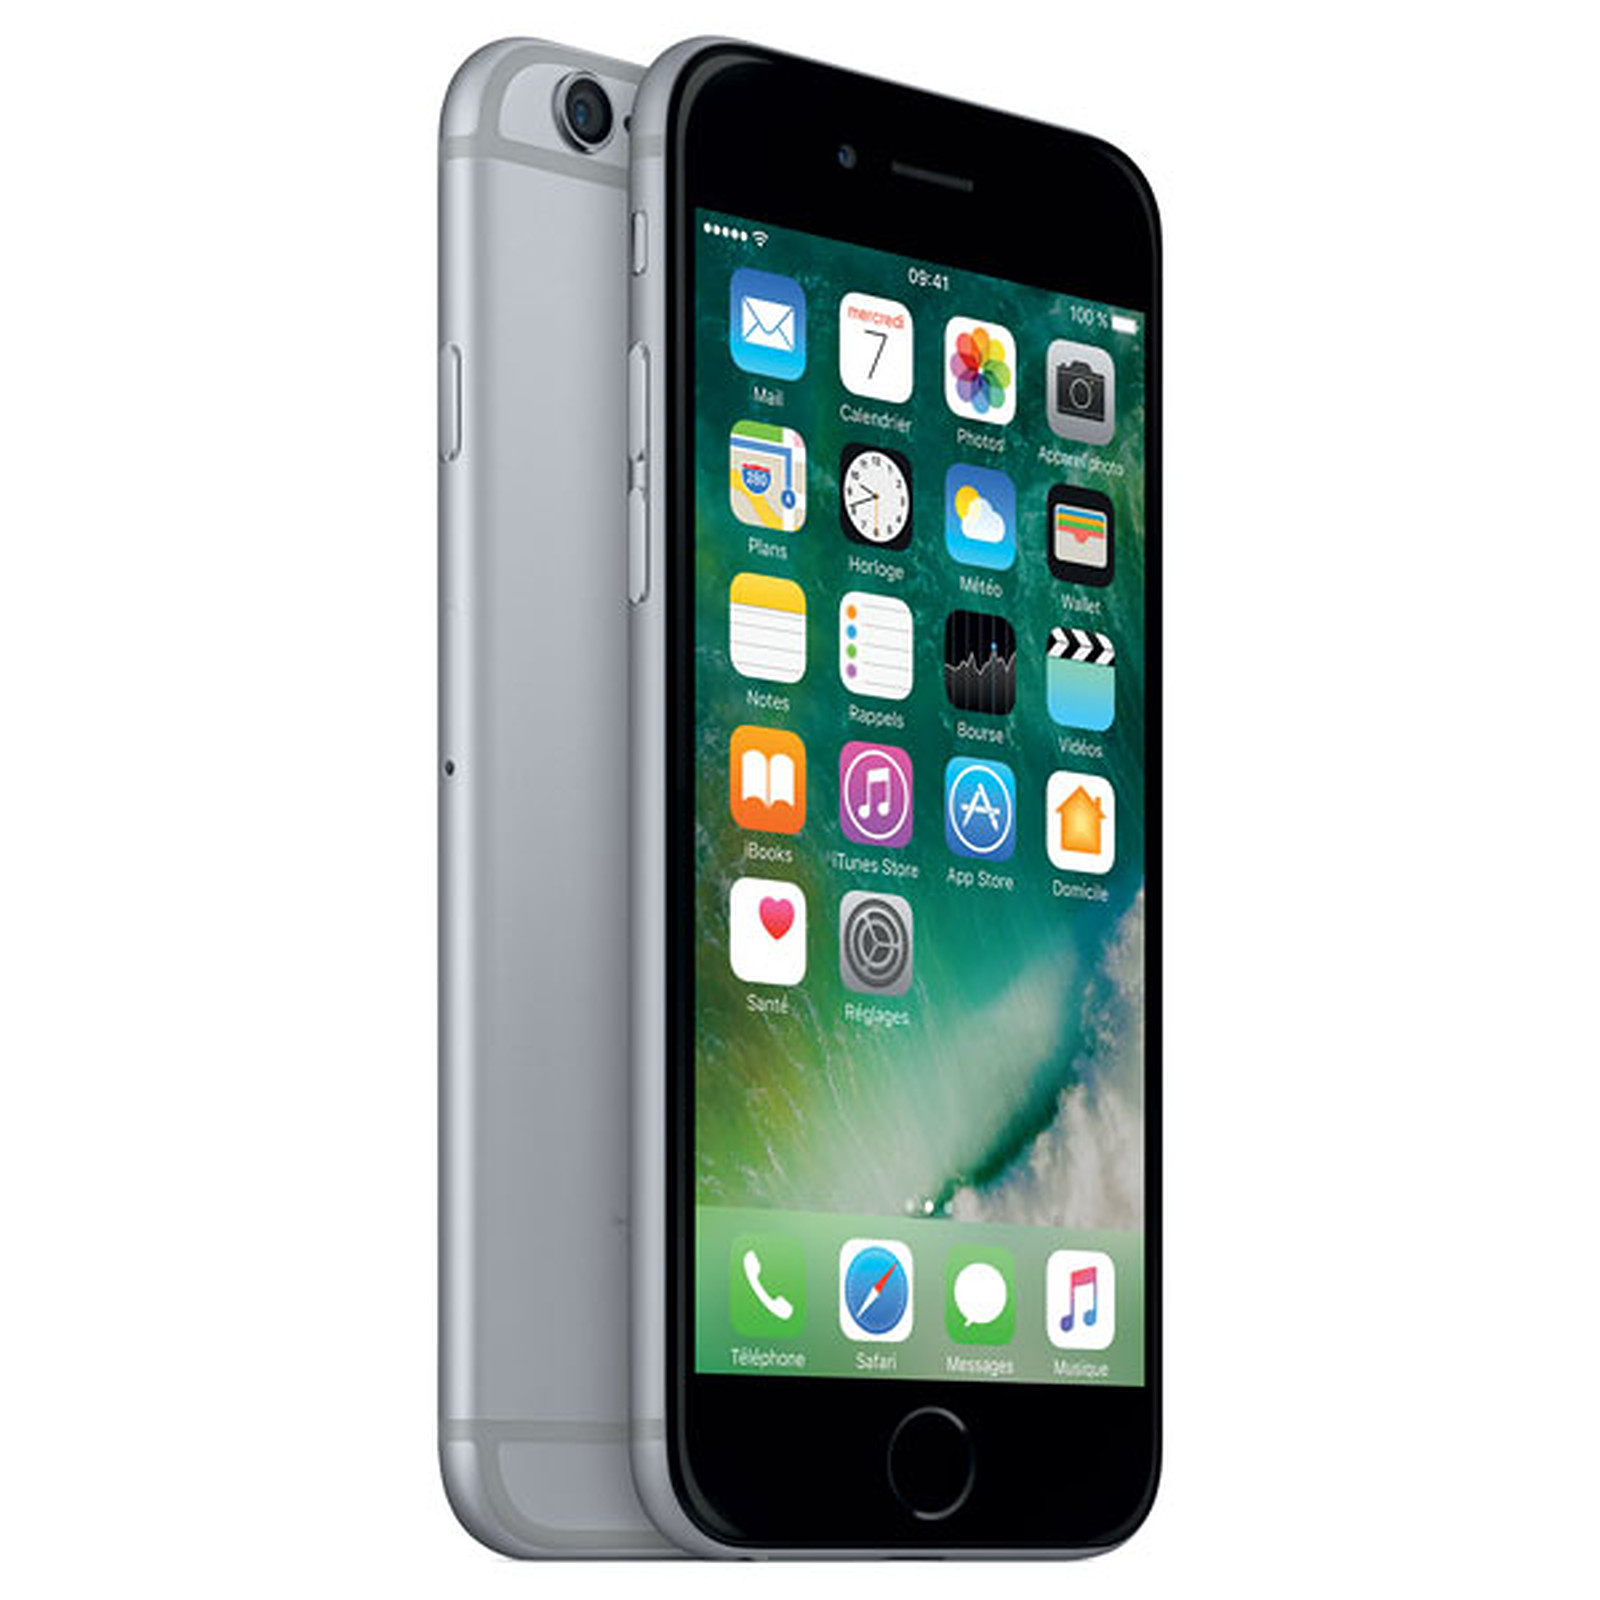 Remade iPhone 6 16 GB Side Grey (Grado A+)